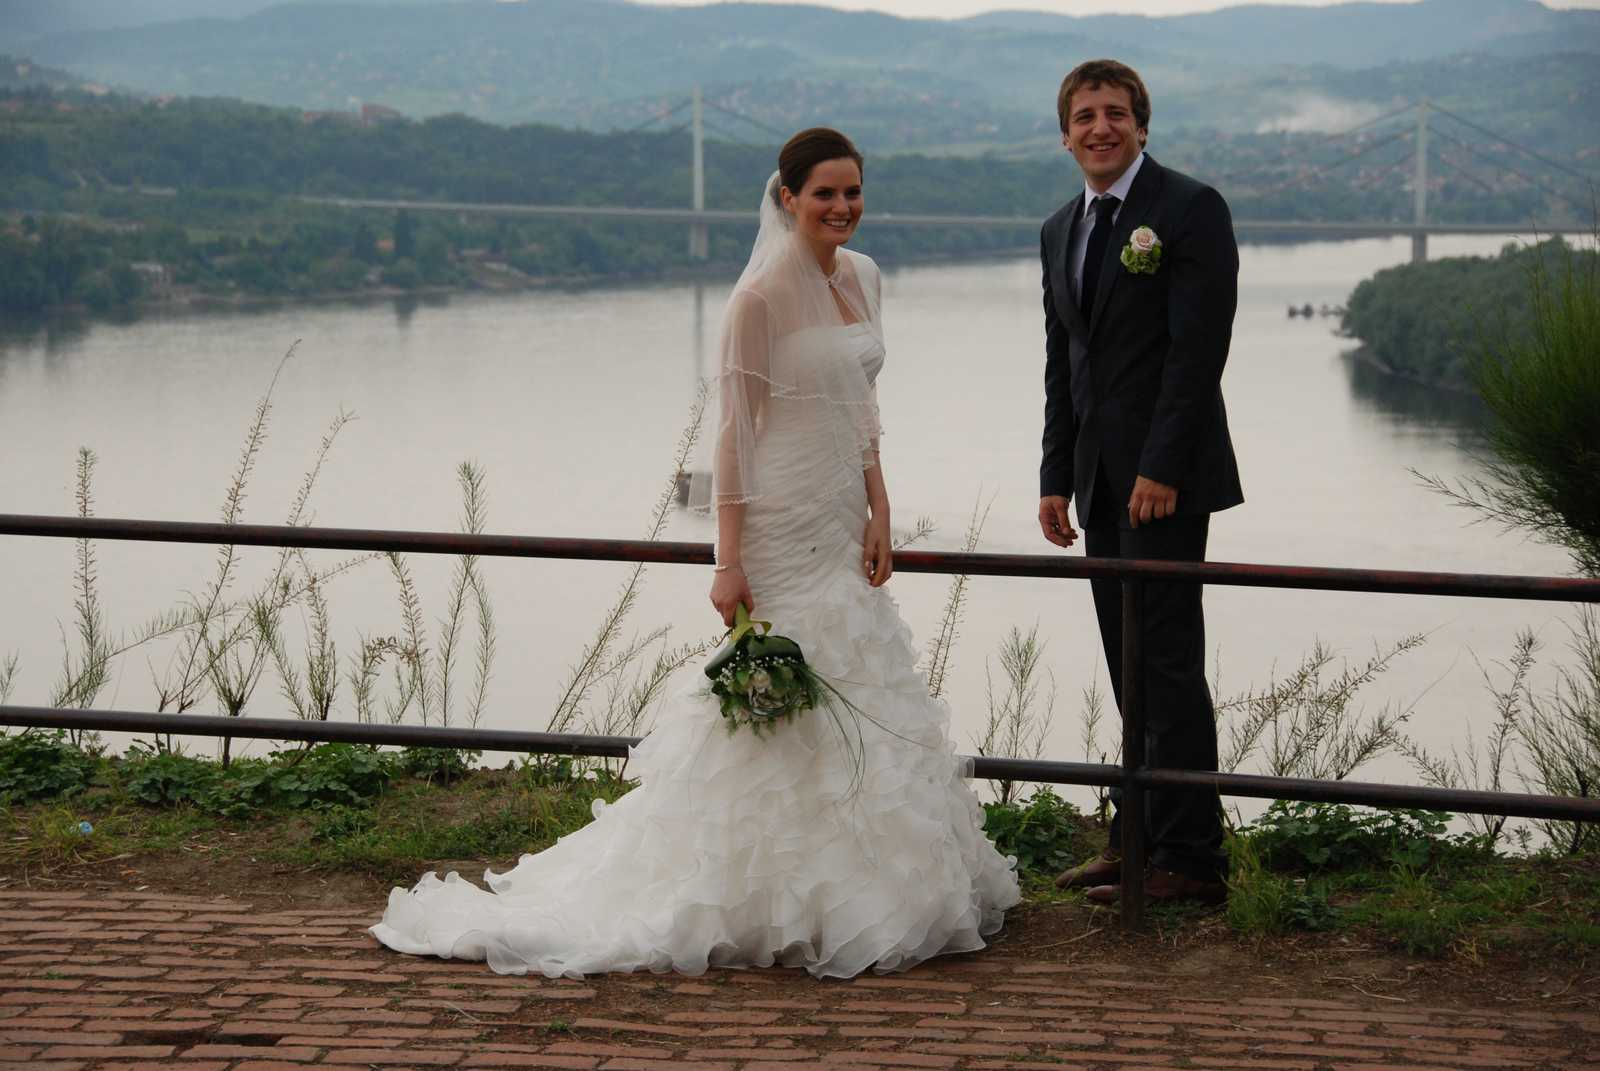 Weddings - Jelena and Nebojsa